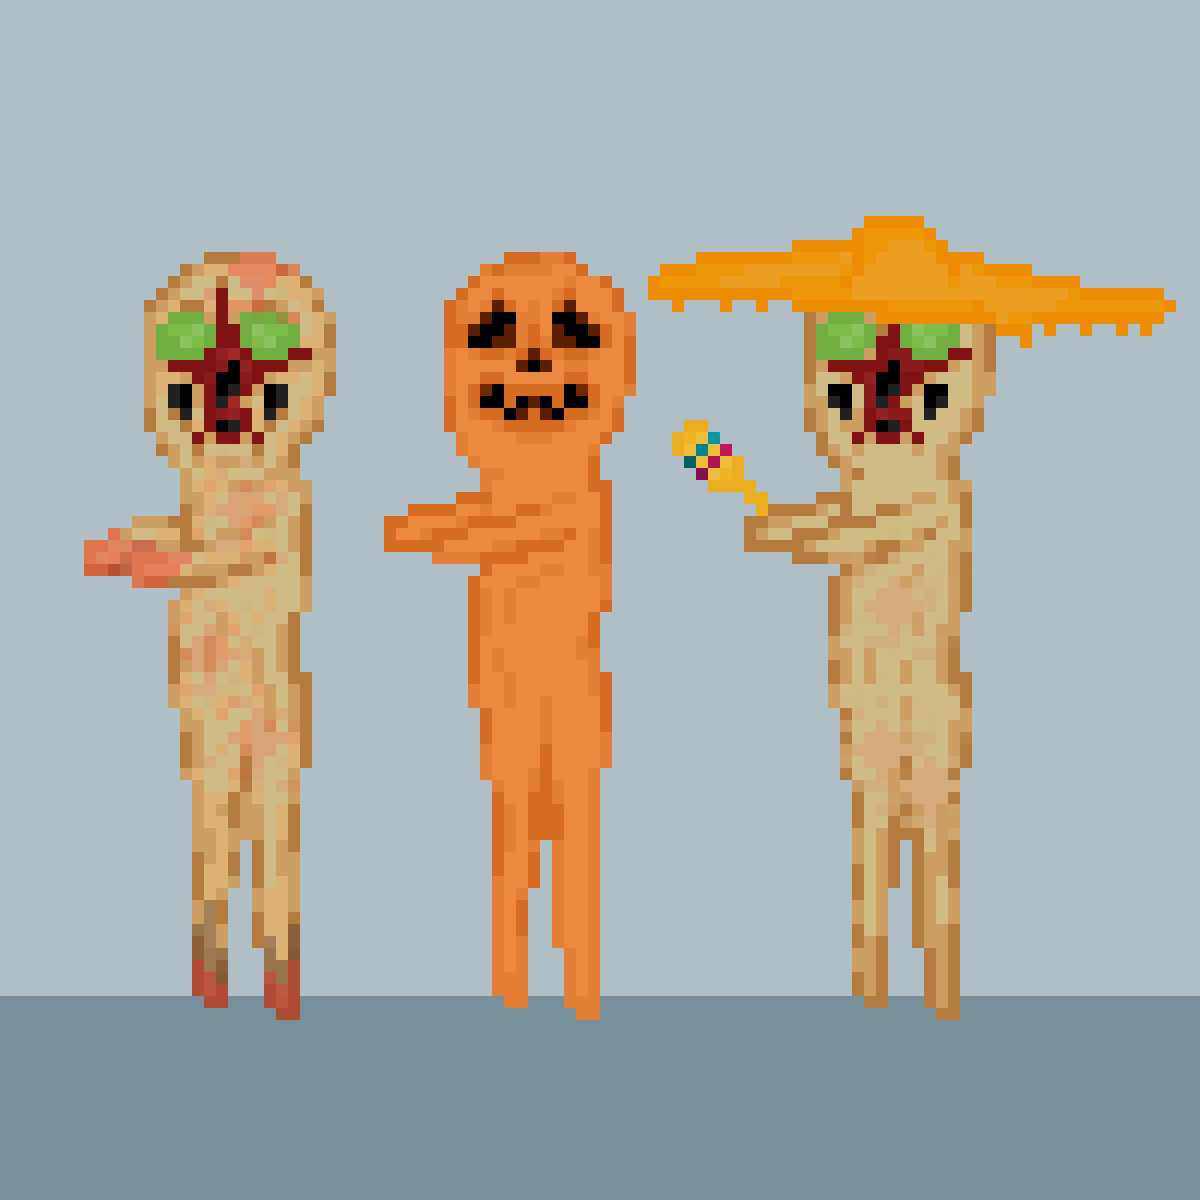 Some variants of SCP-173 by SCPpixel